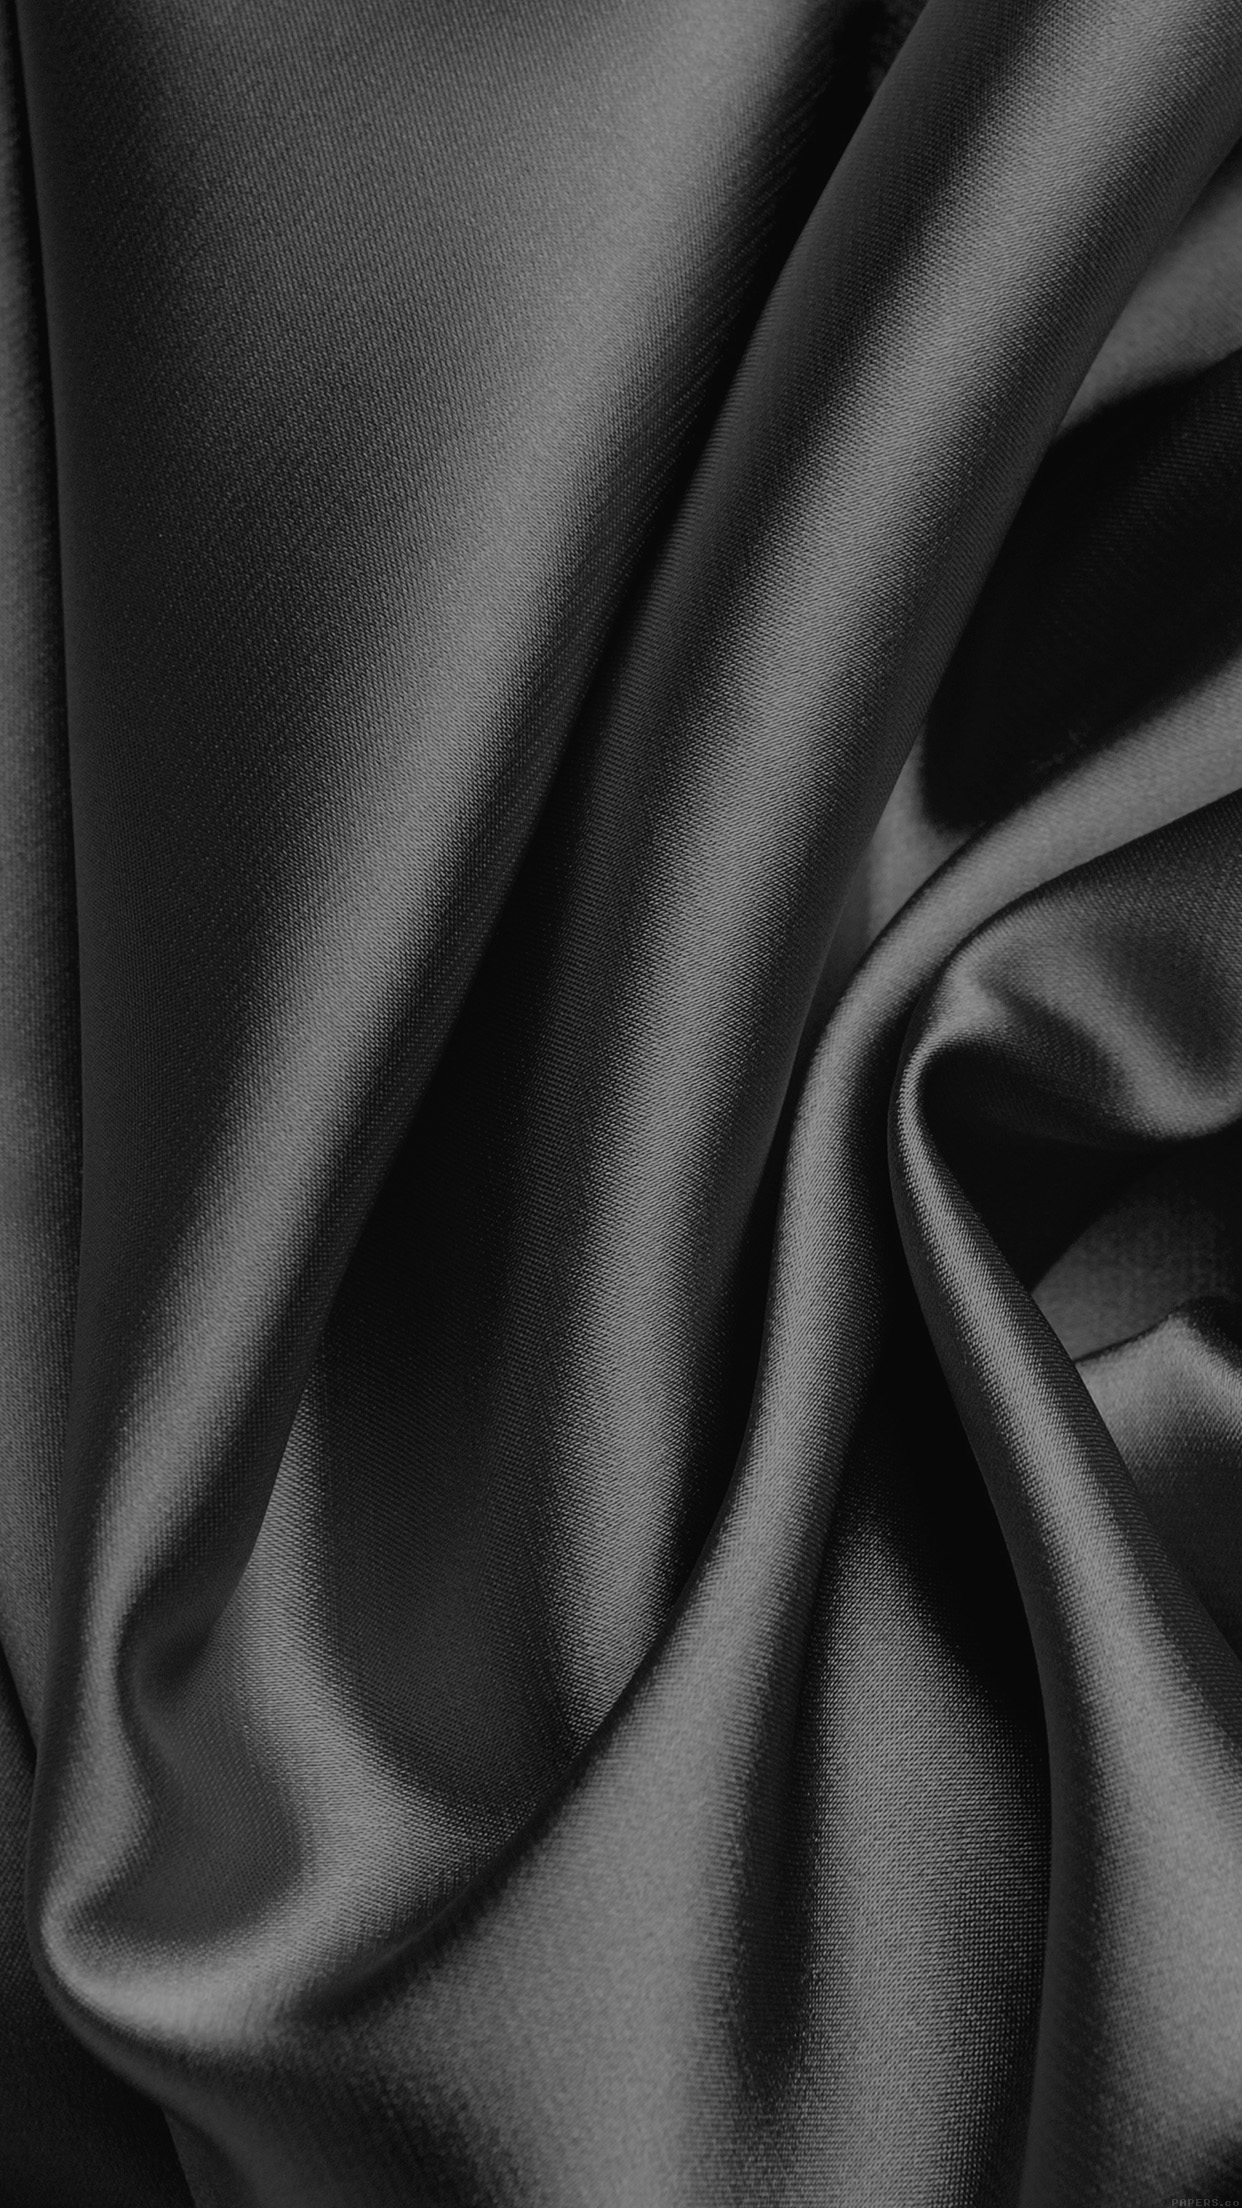 Texture Fabric Black Bw Gorgeous Pattern Android wallpaper